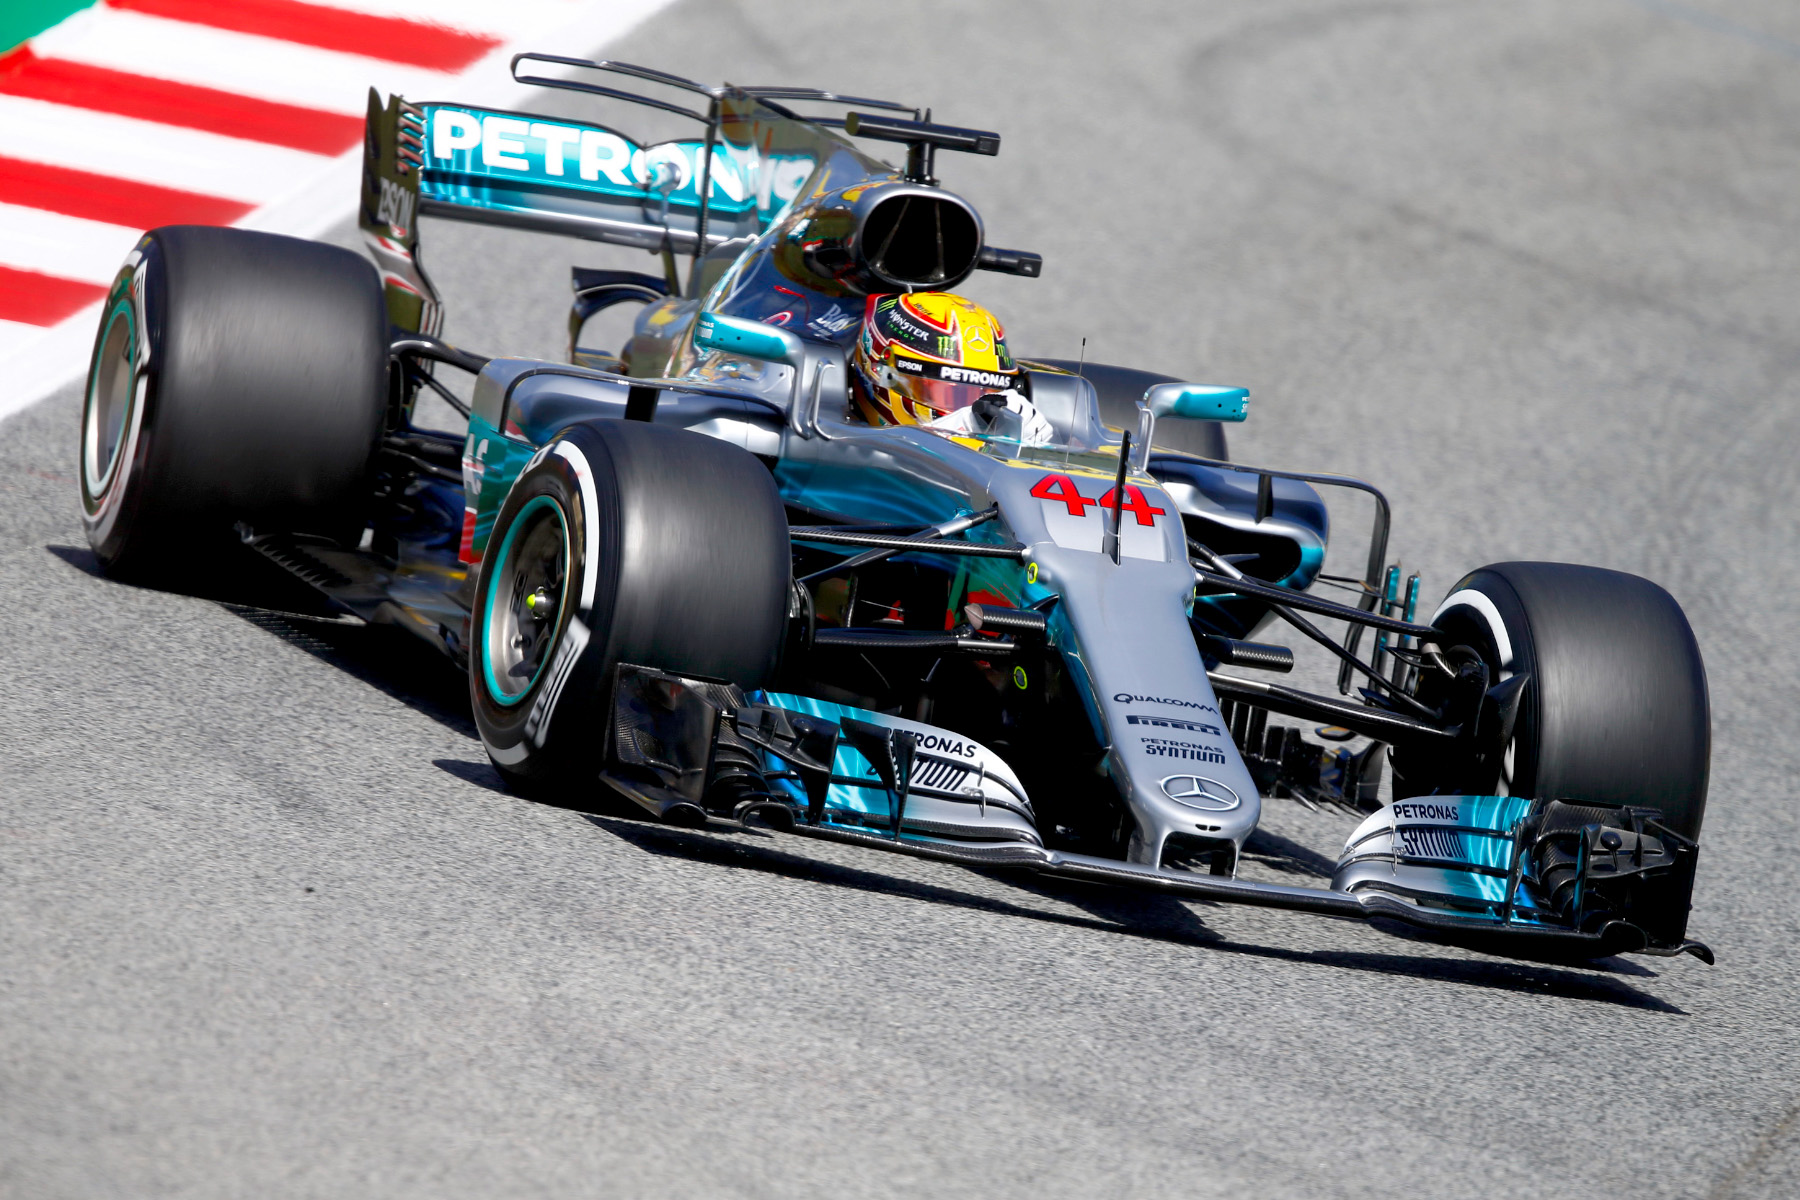 Lewis Hamilton navigated his way to victory at Spain's Circuit de Barcelona-Catalunya